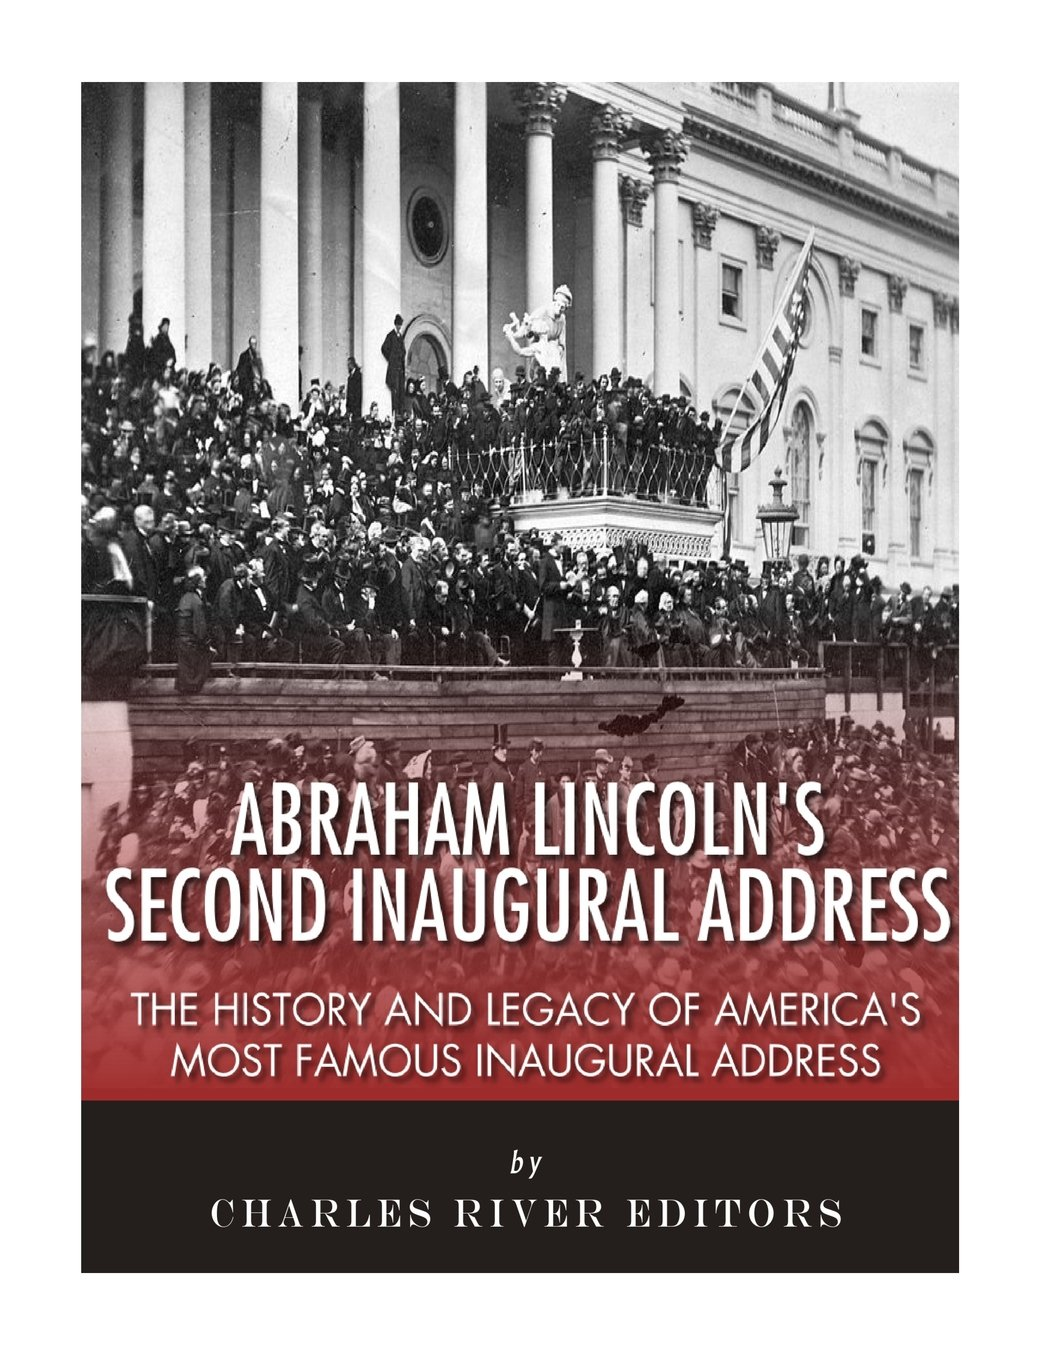 Download Abraham Lincoln's Second Inaugural Address: The History and Legacy of America's Most Famous Inaugural Address ebook